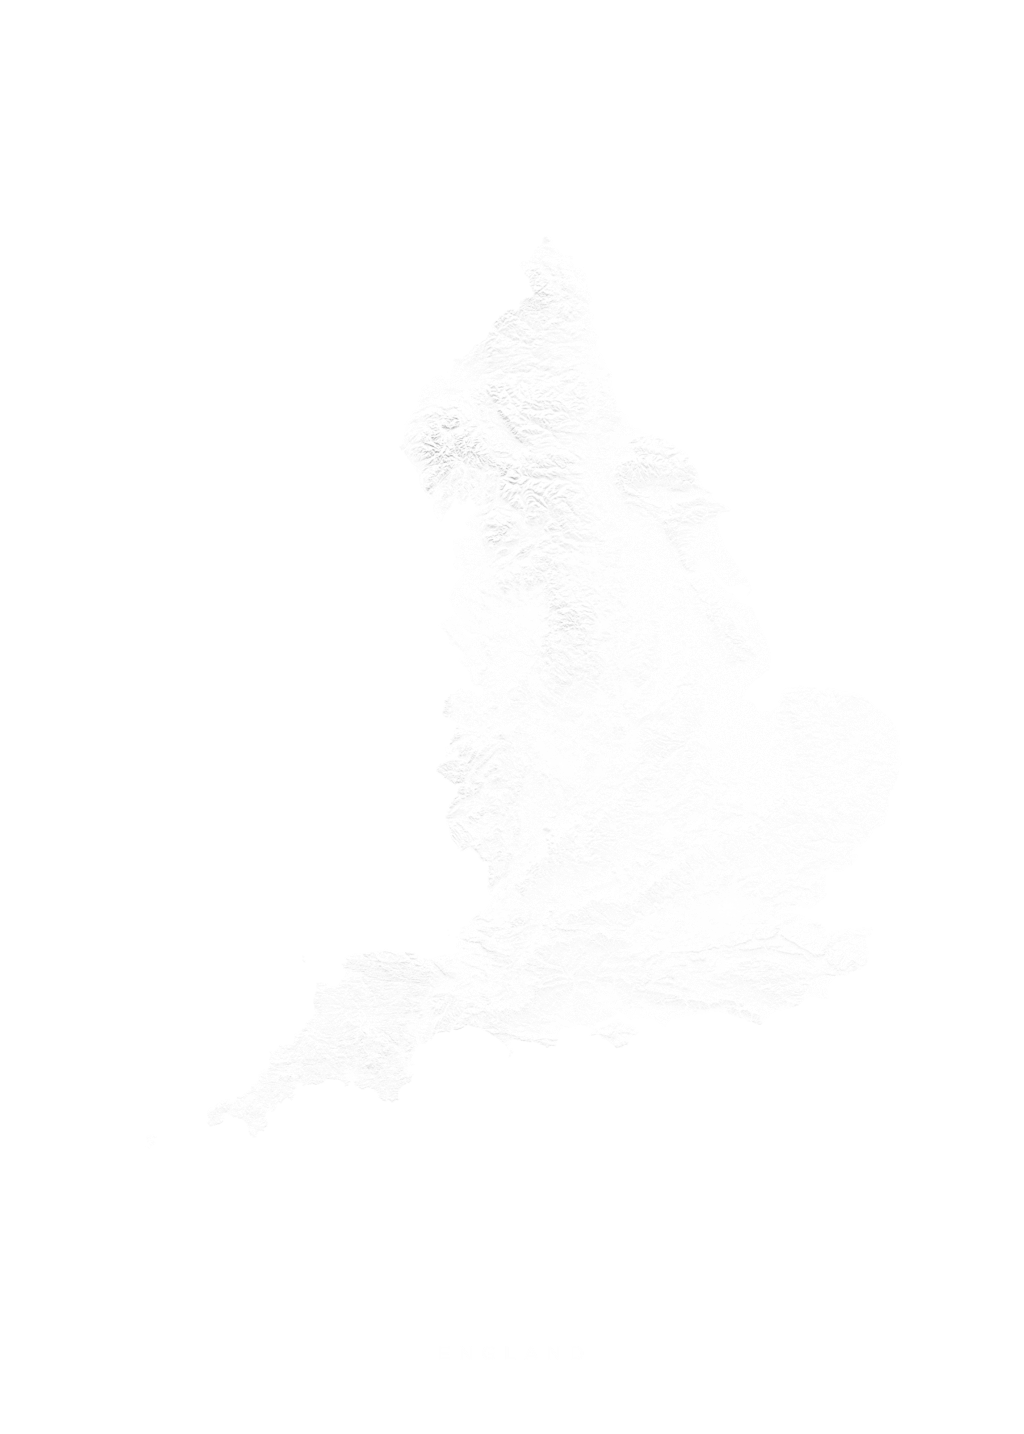 England wall map